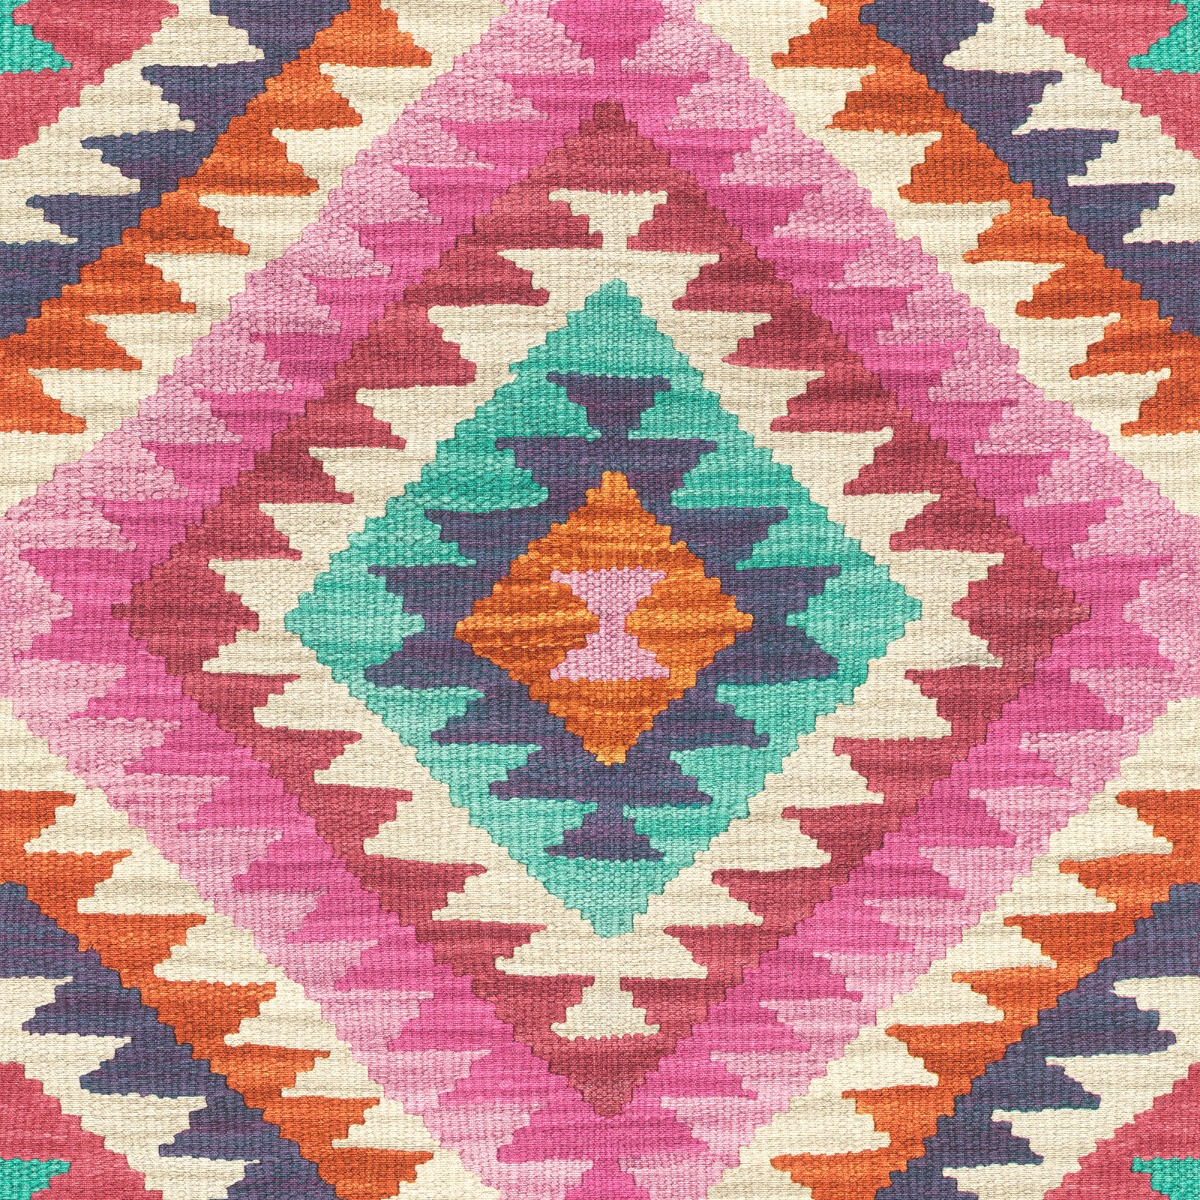 Barbara Home Kilim Style Aztec Wallpaper - Pink and Multi - Rasch 527445